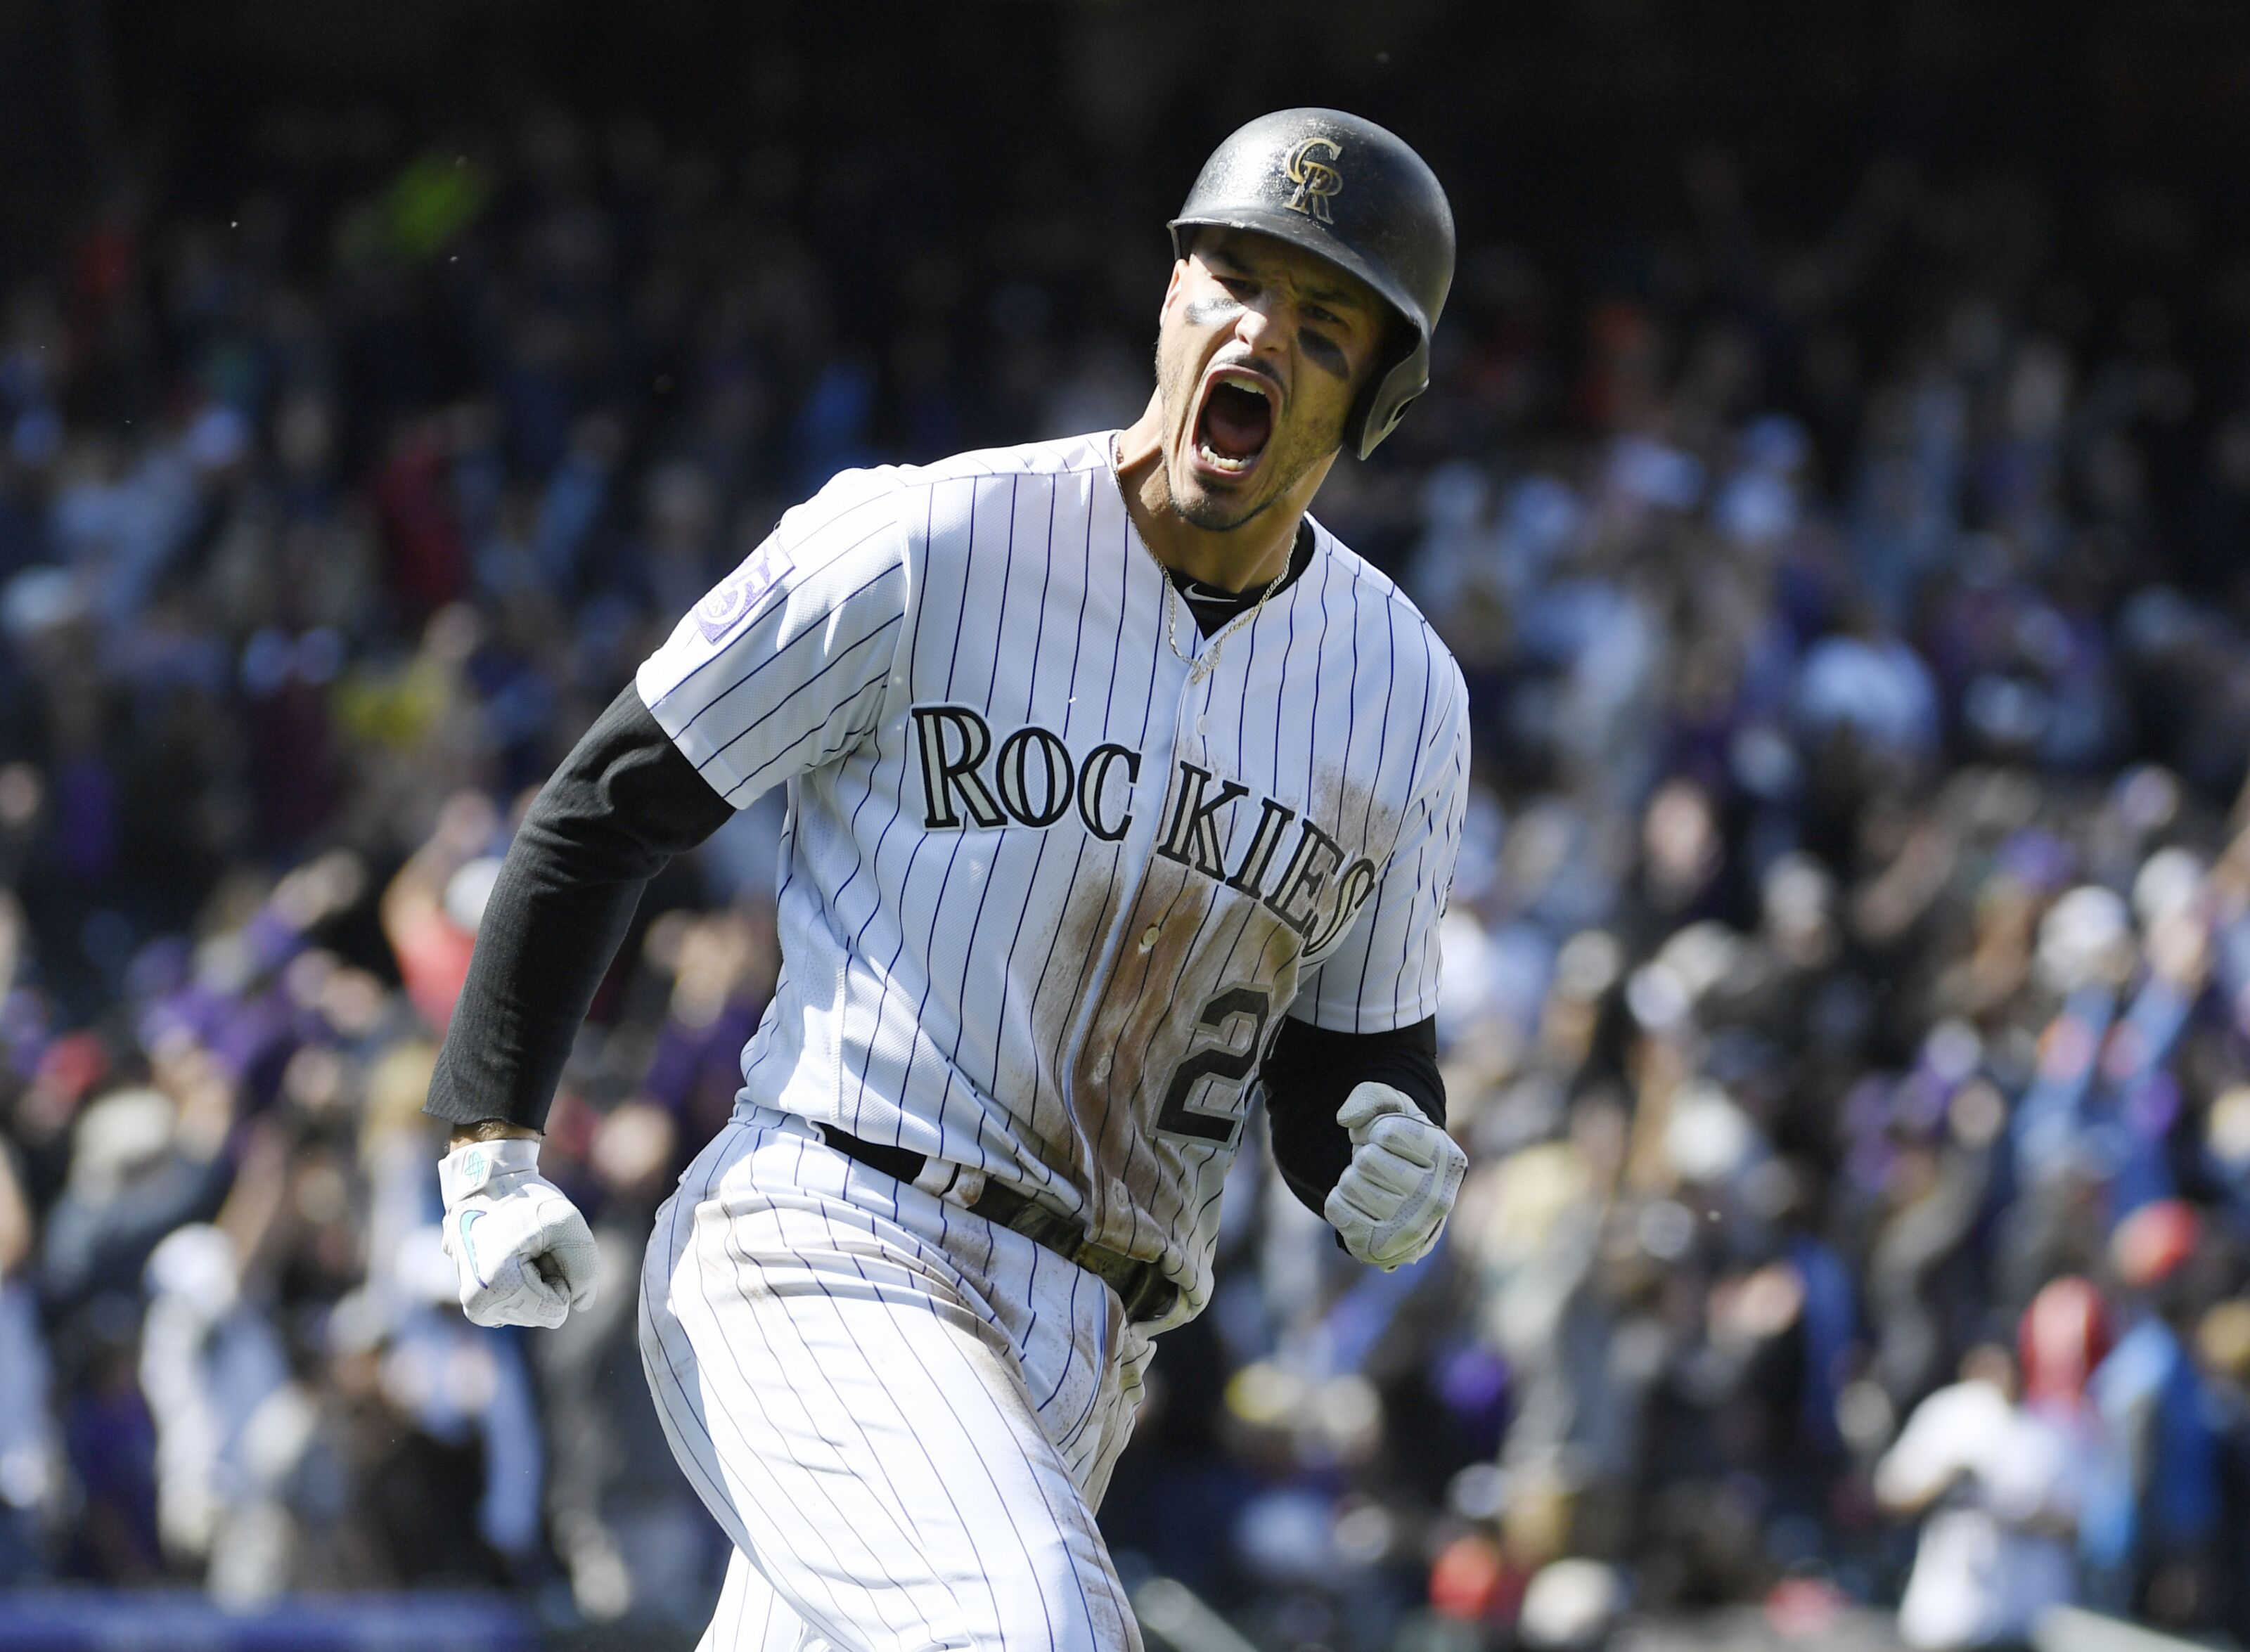 d52c98f4b0e Colorado Rockies  Nolan Arenado Breaks the Arbitration Contract Record